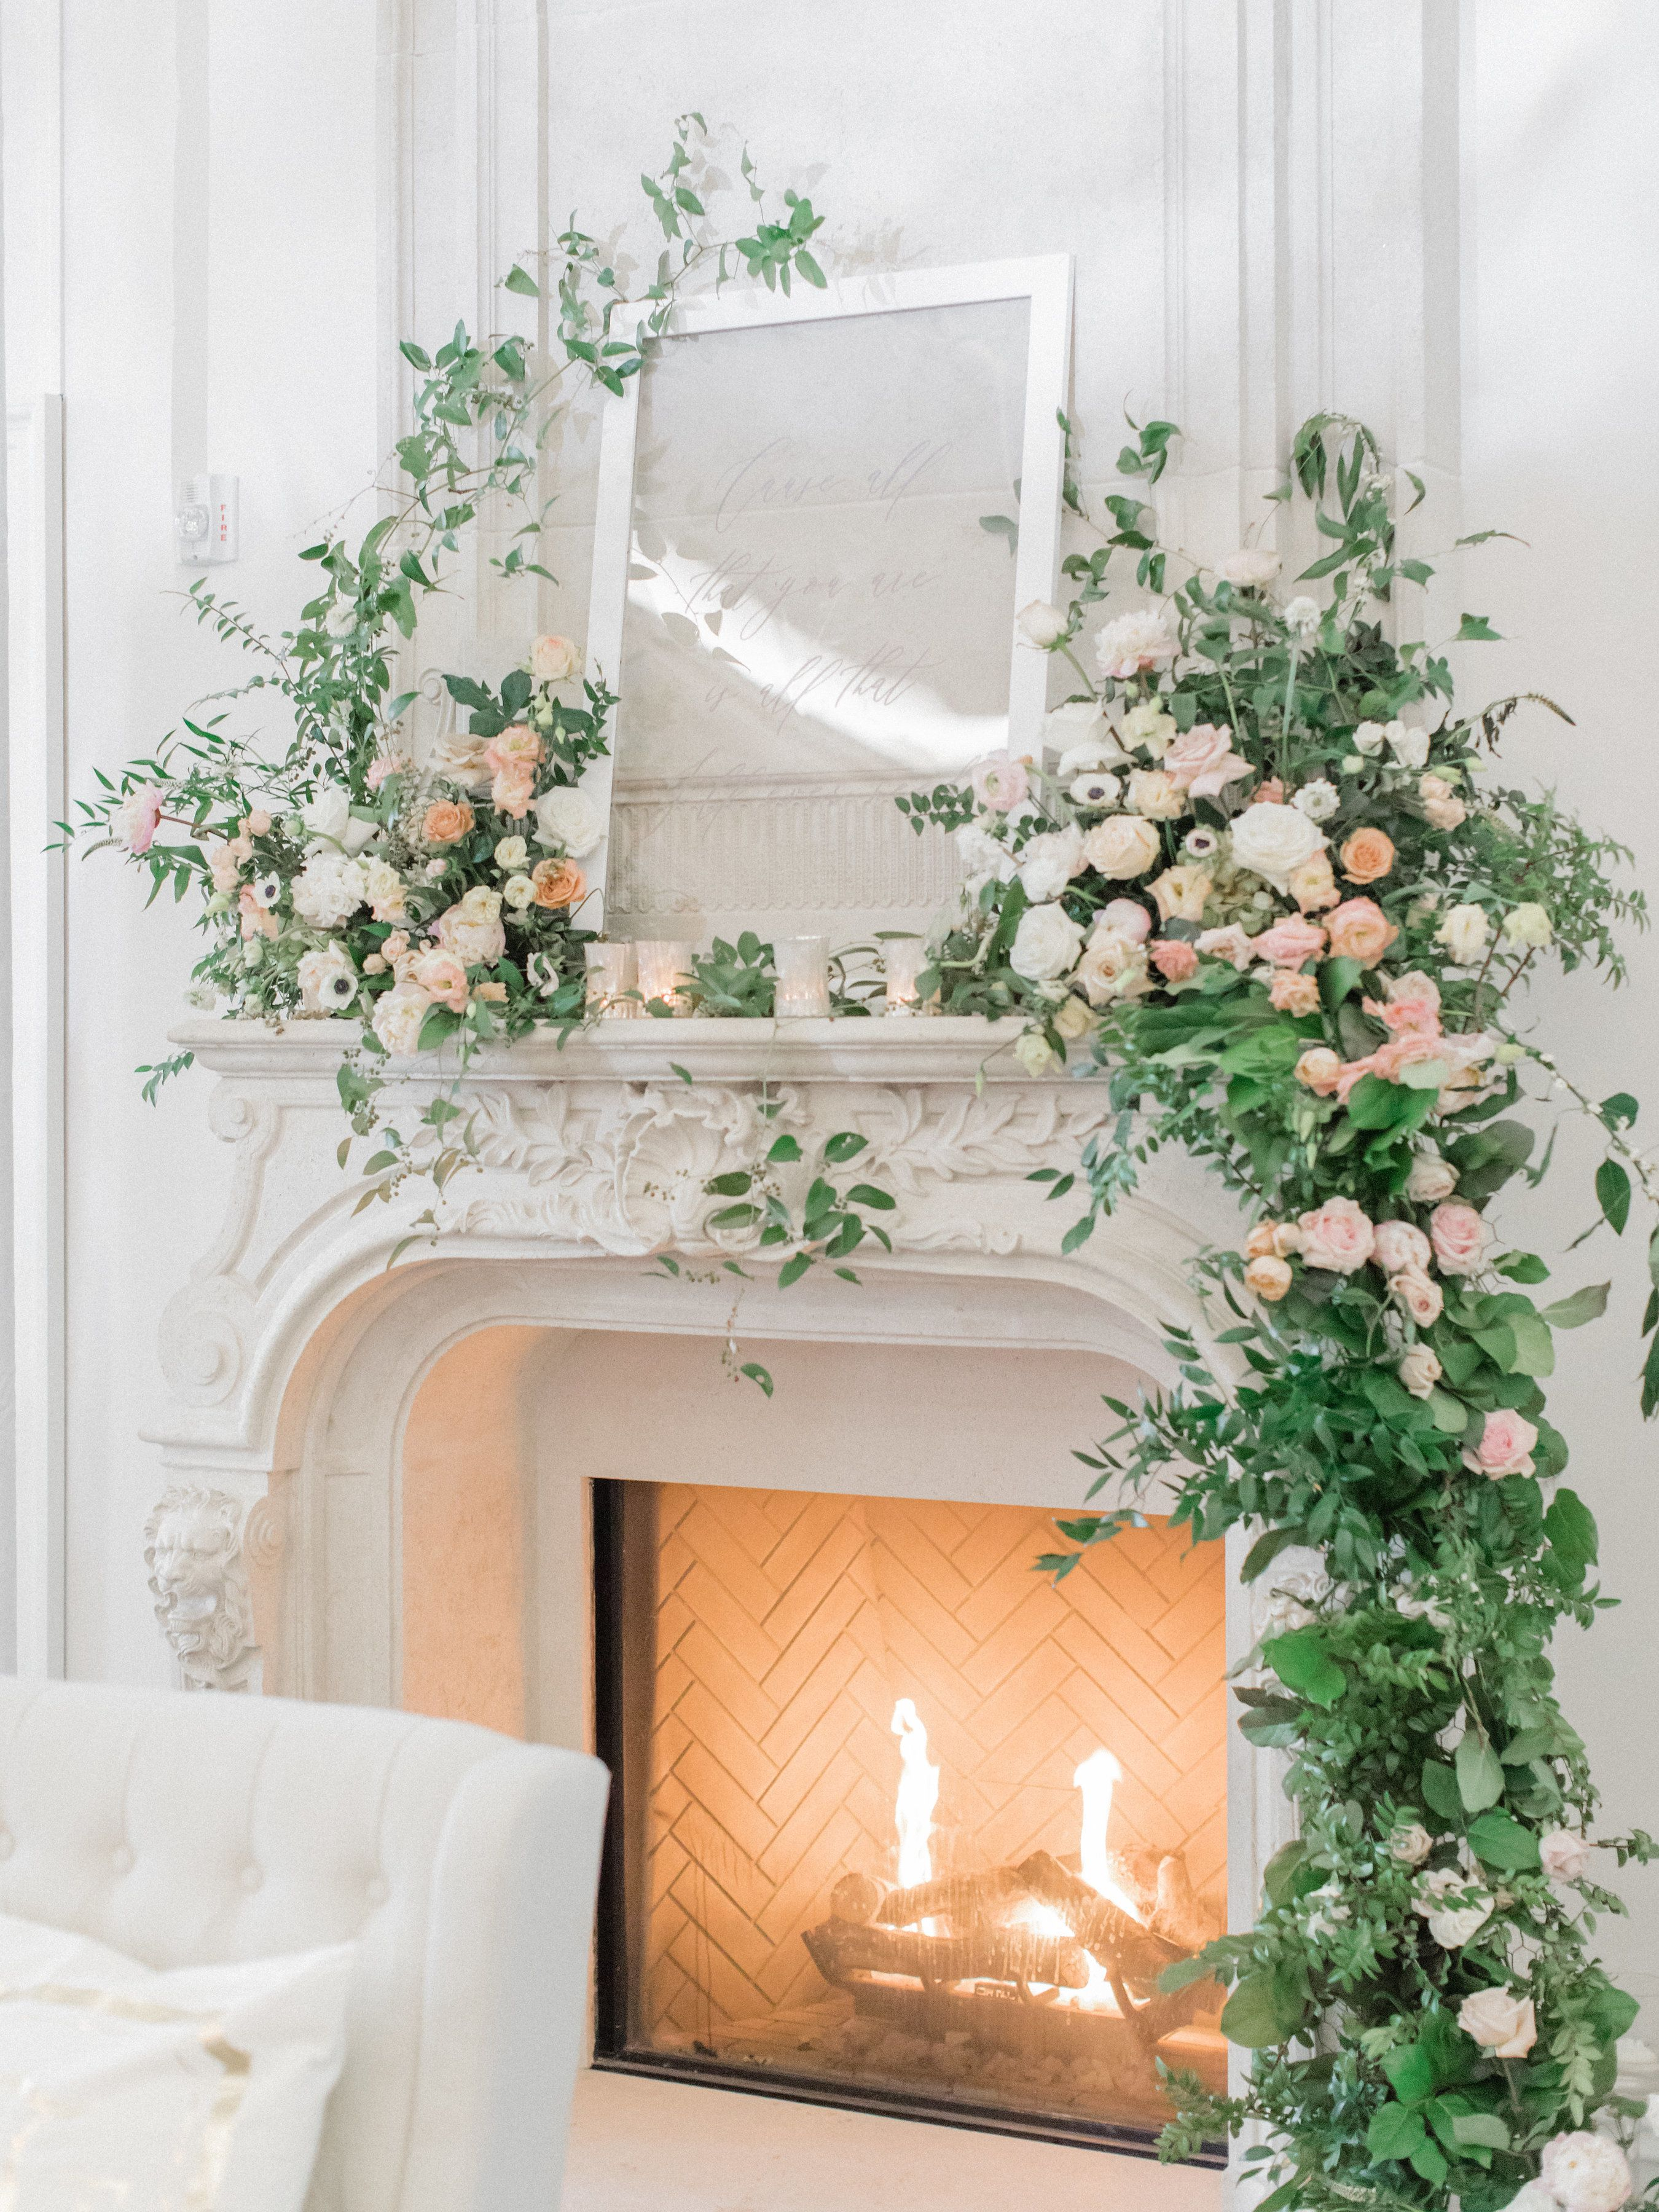 A Romantic Winter Wedding at Park Chateau with Hundreds of Blooms is part of Wedding flowers tulips - A Romantic Winter Wedding at Park Chateau with Hundreds of Blooms